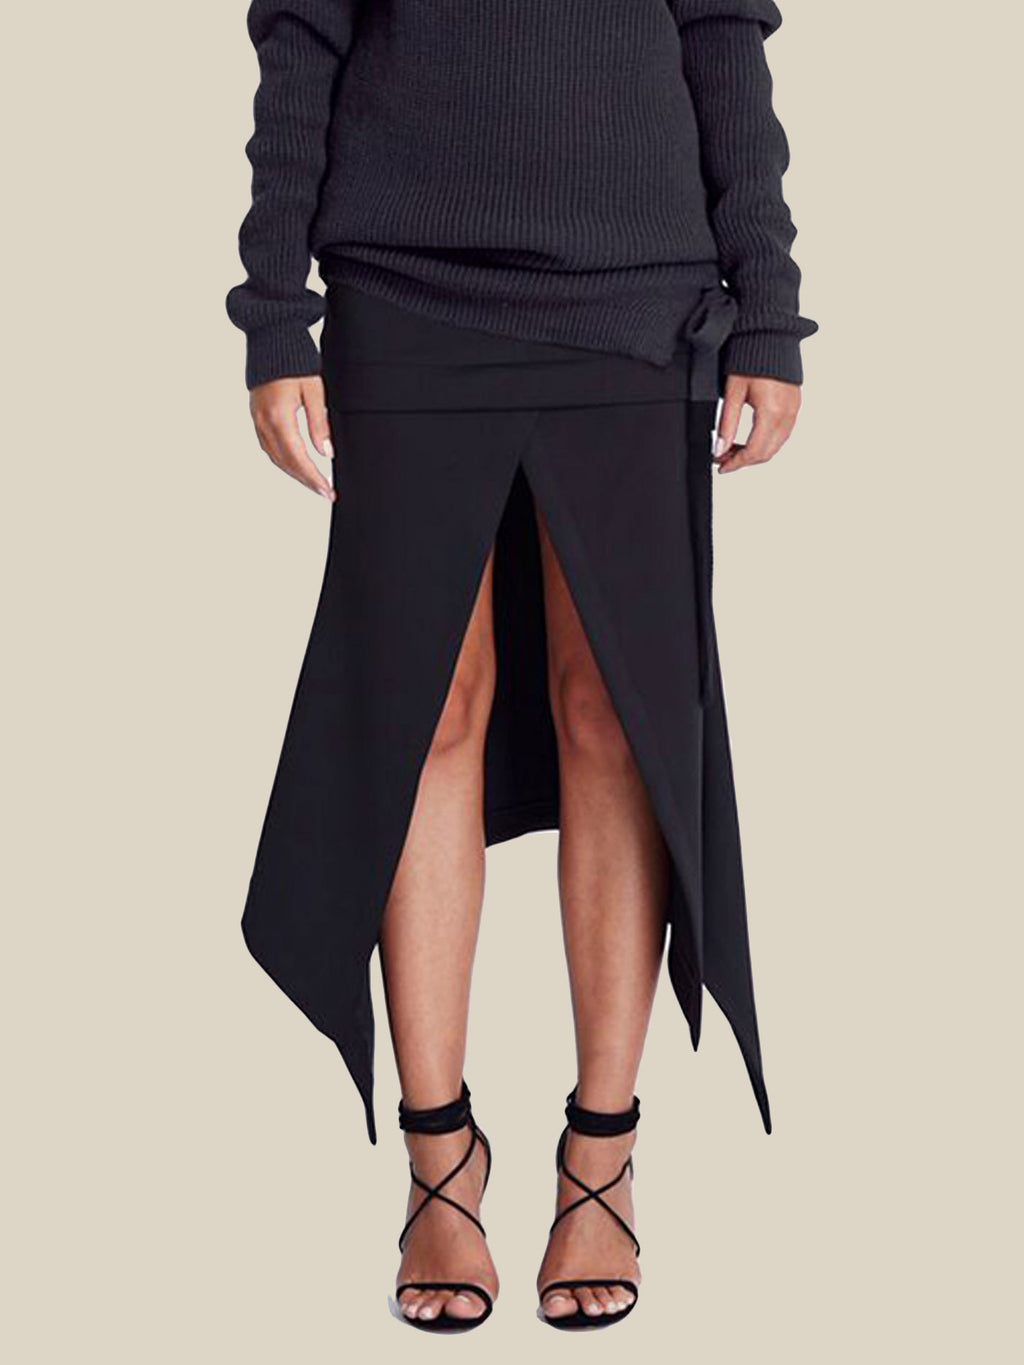 maurie and eve young for eternity skirt black